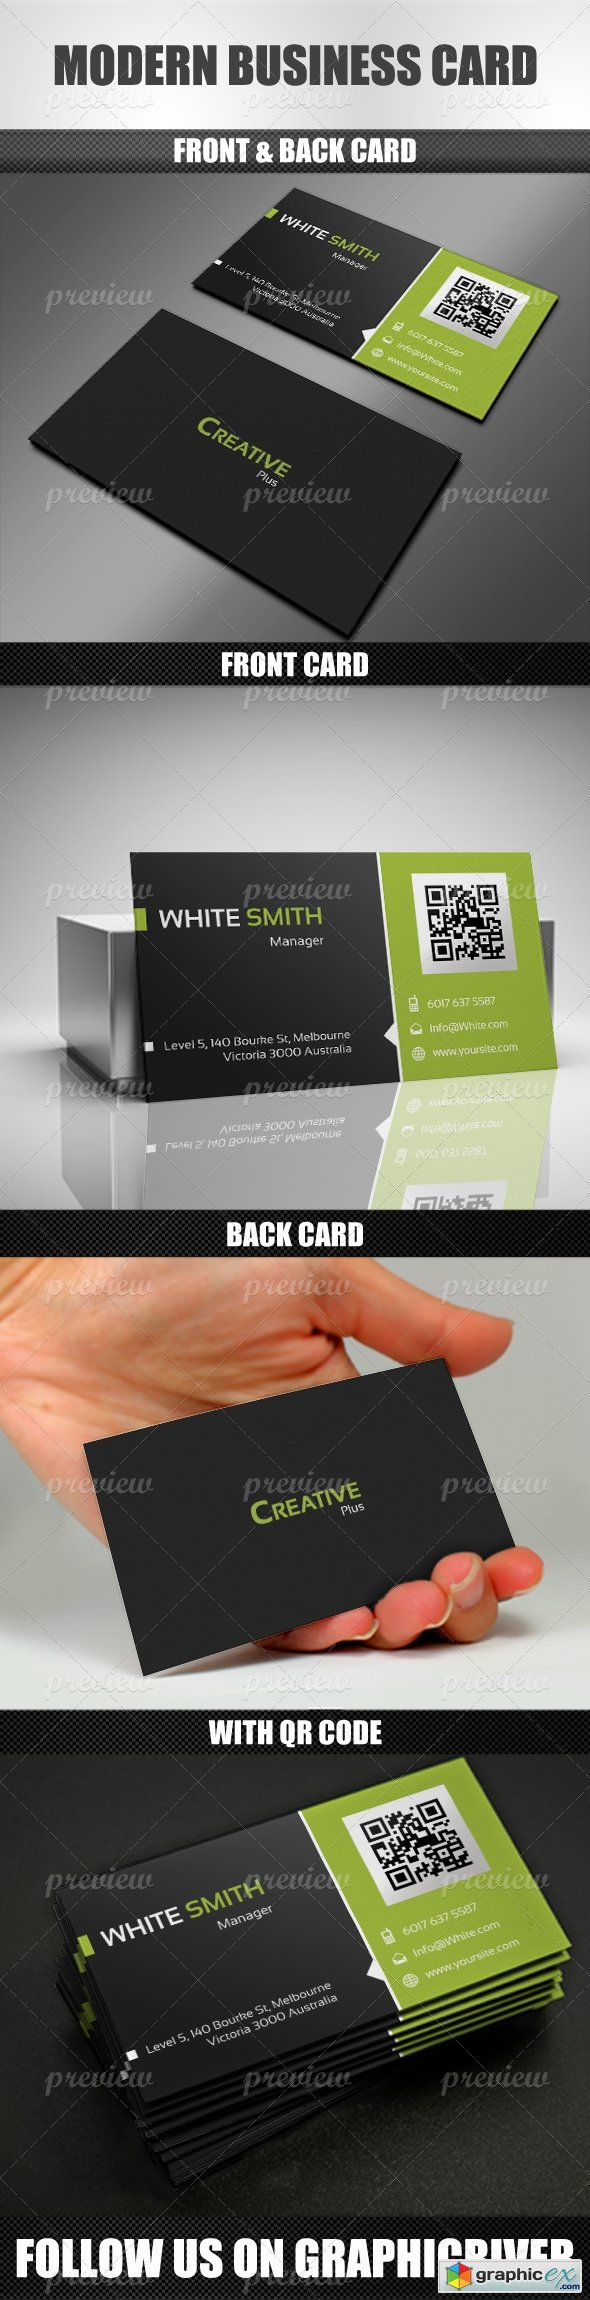 Modern Business Card 1373